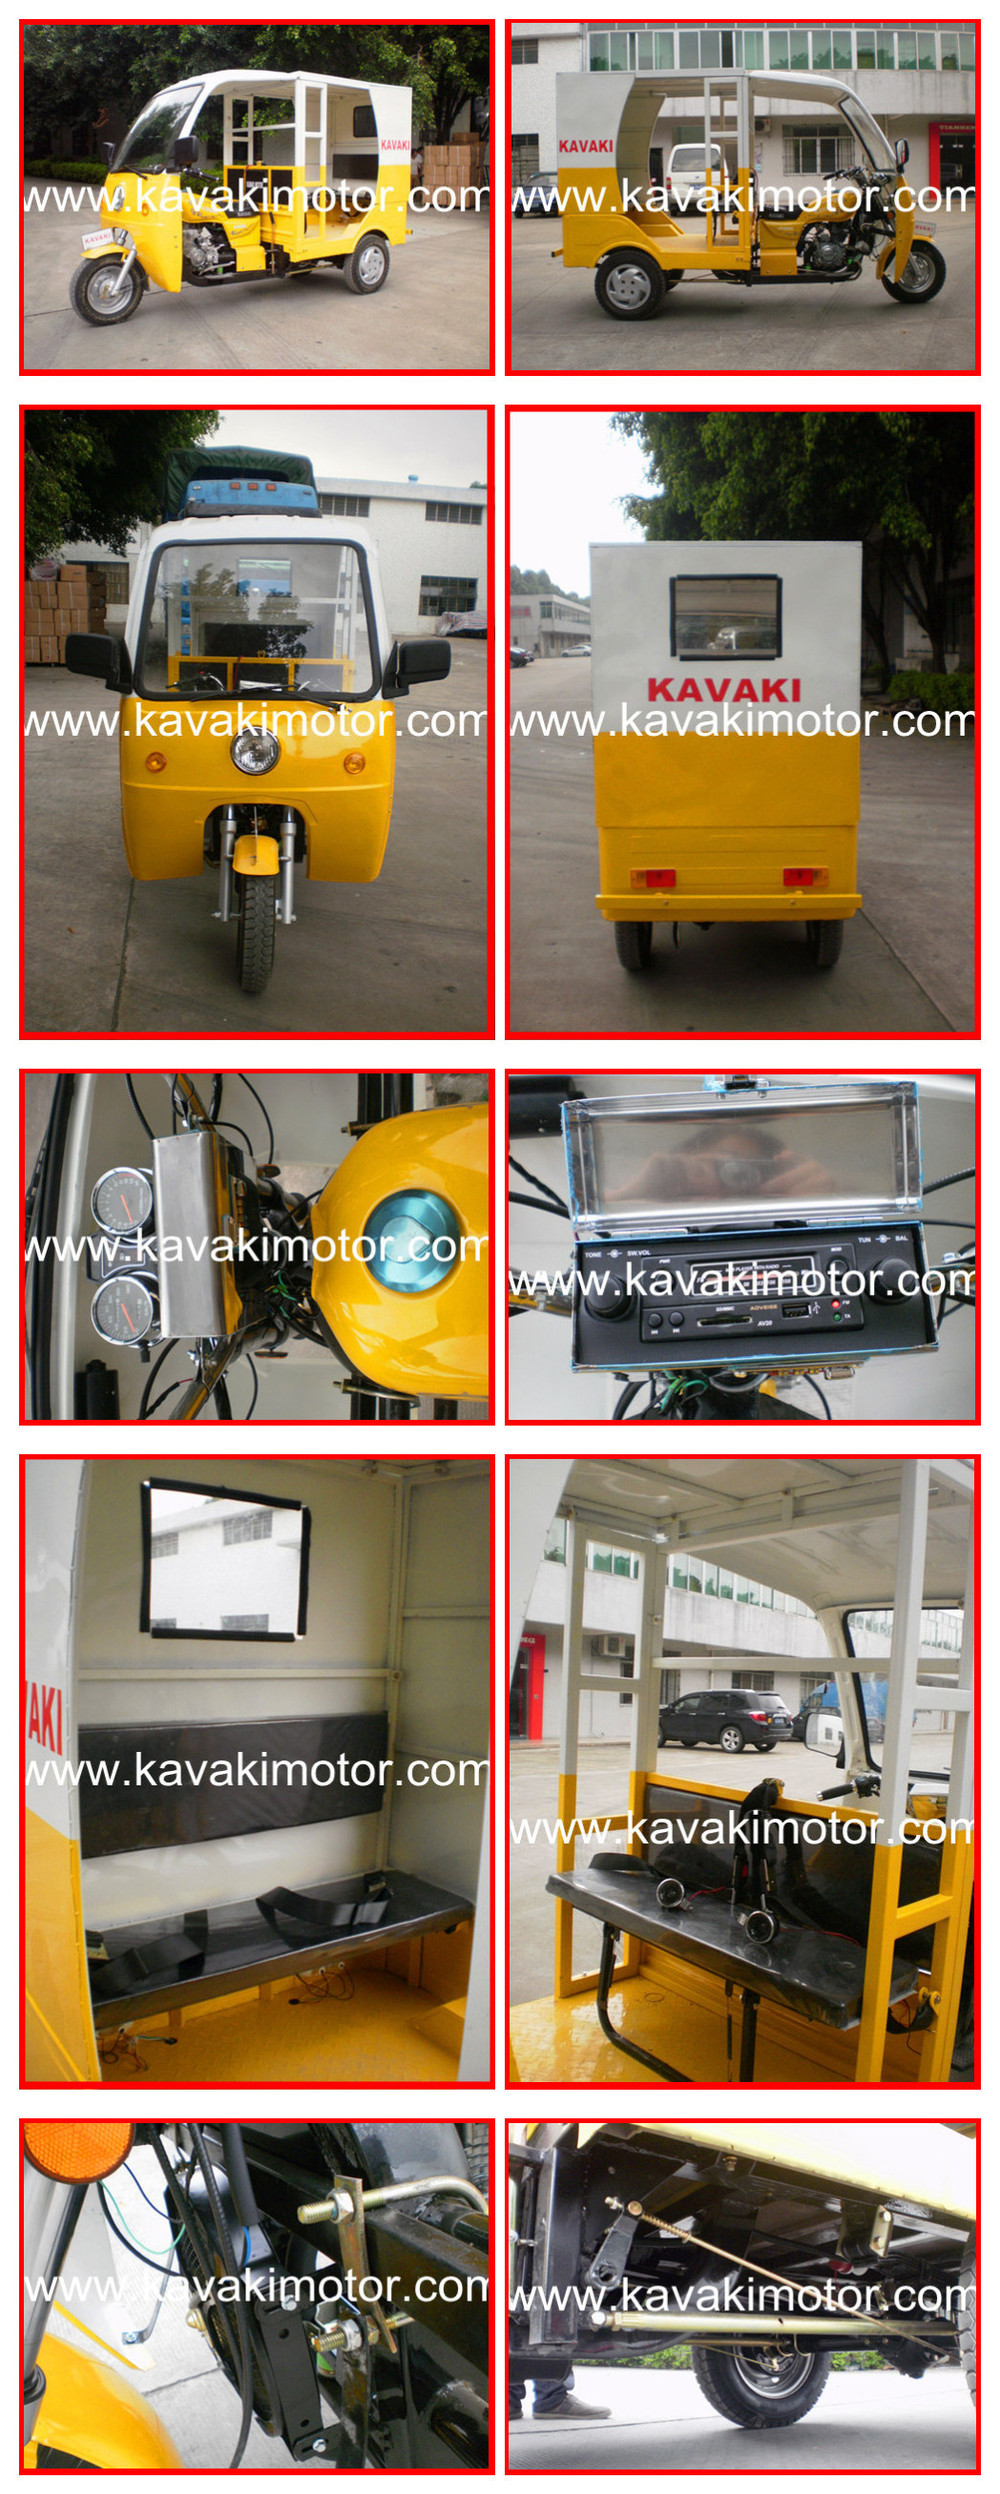 Factory Oulet Petrol Powered Similar As Bajaj Model Tuk Tuk Taxi Passenger Tricycle 0086-15217691767